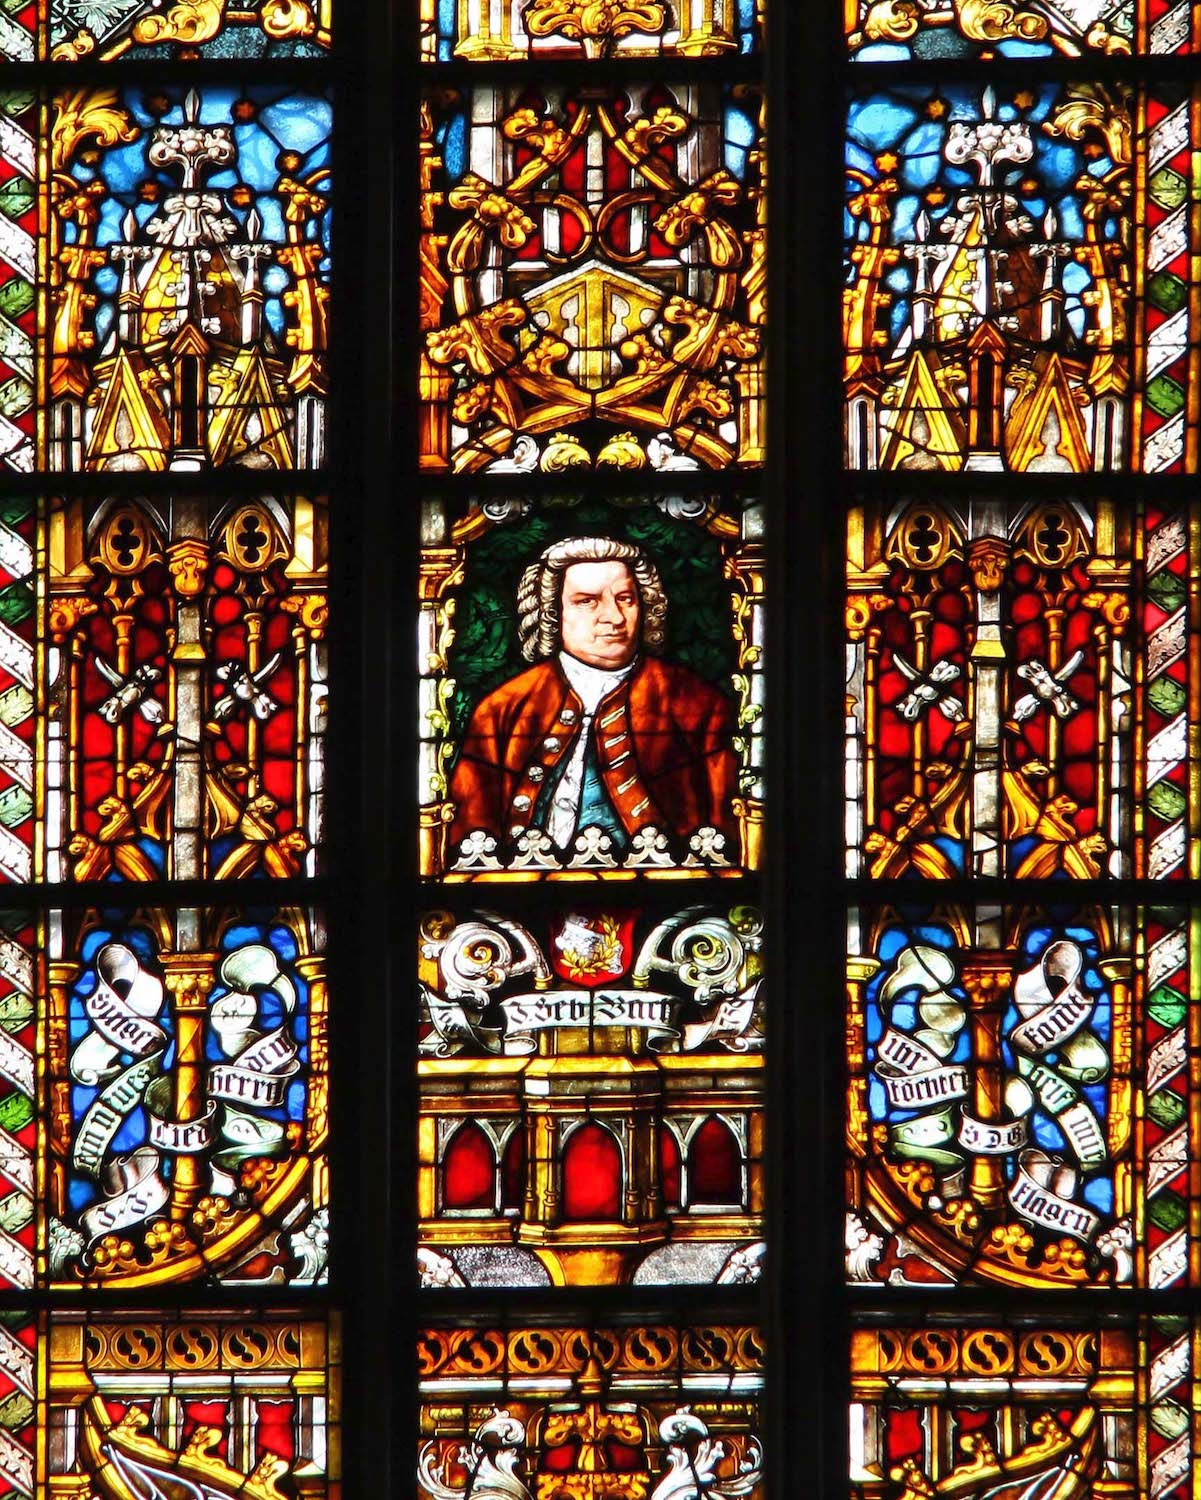 The Bach glass window in the Thomaskirche in Leipzig.